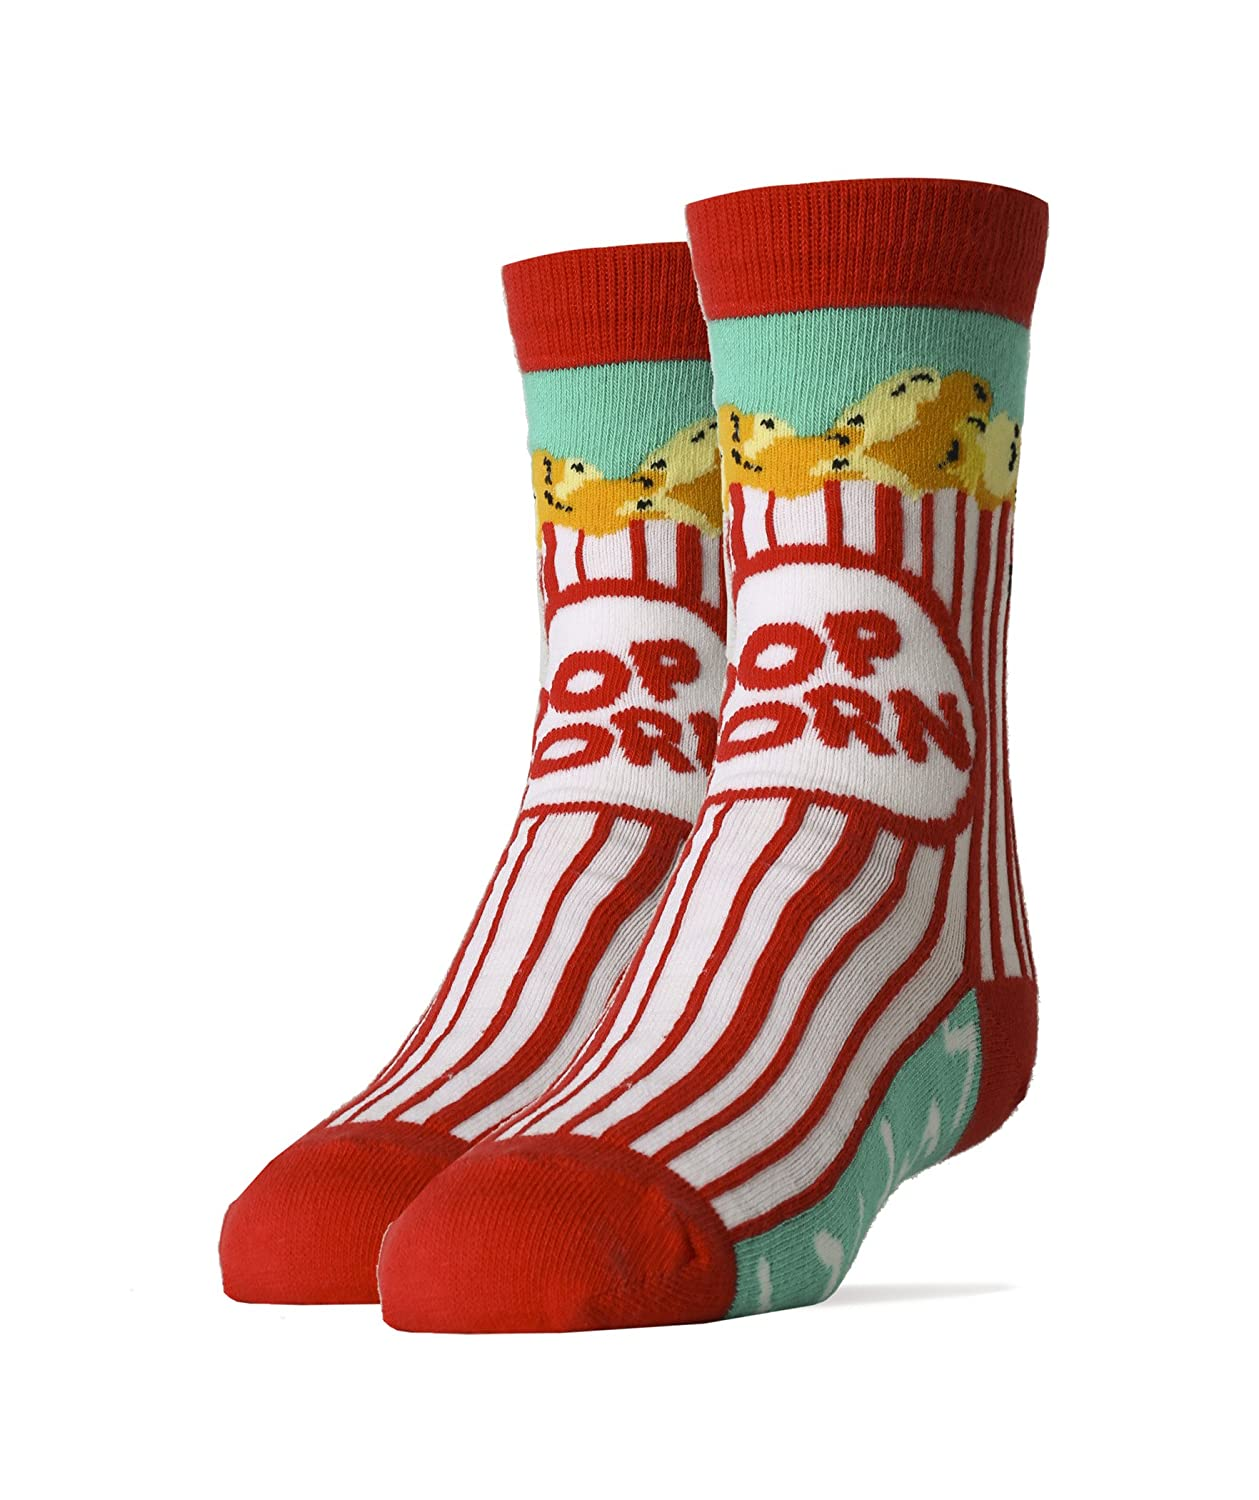 Kids Youth Crew Funny Novelty Socks Box O' Popcorn YD6022C